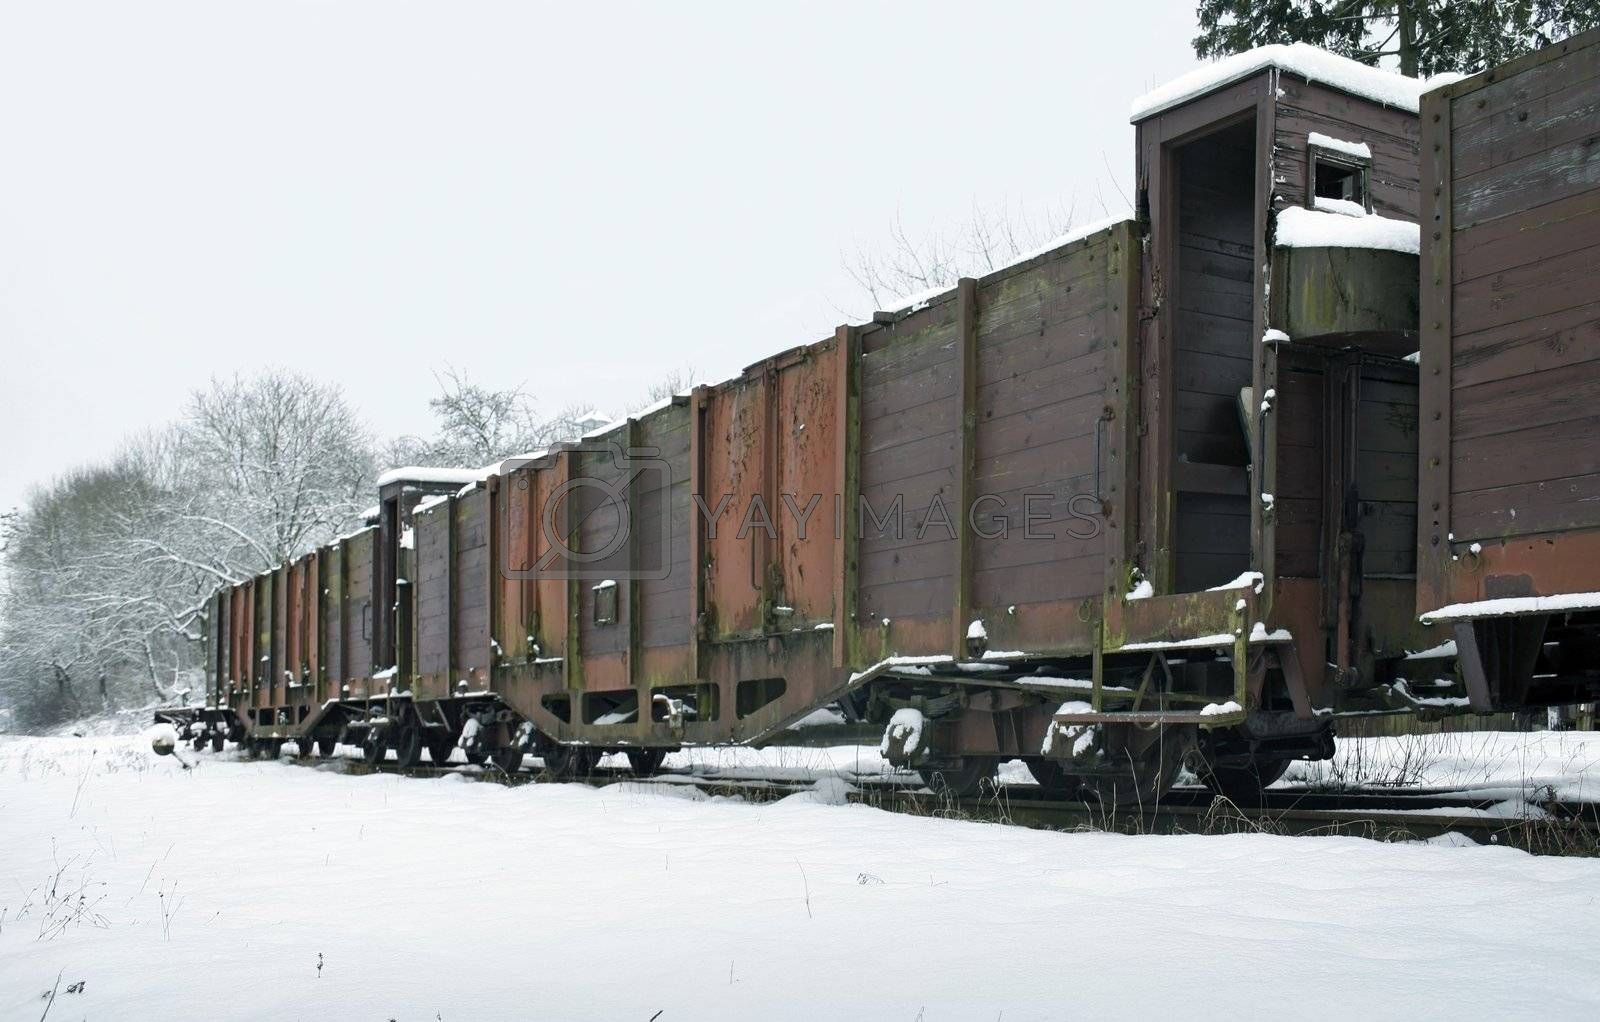 outdoor shot of old railway cars in Southern Germany at winter time